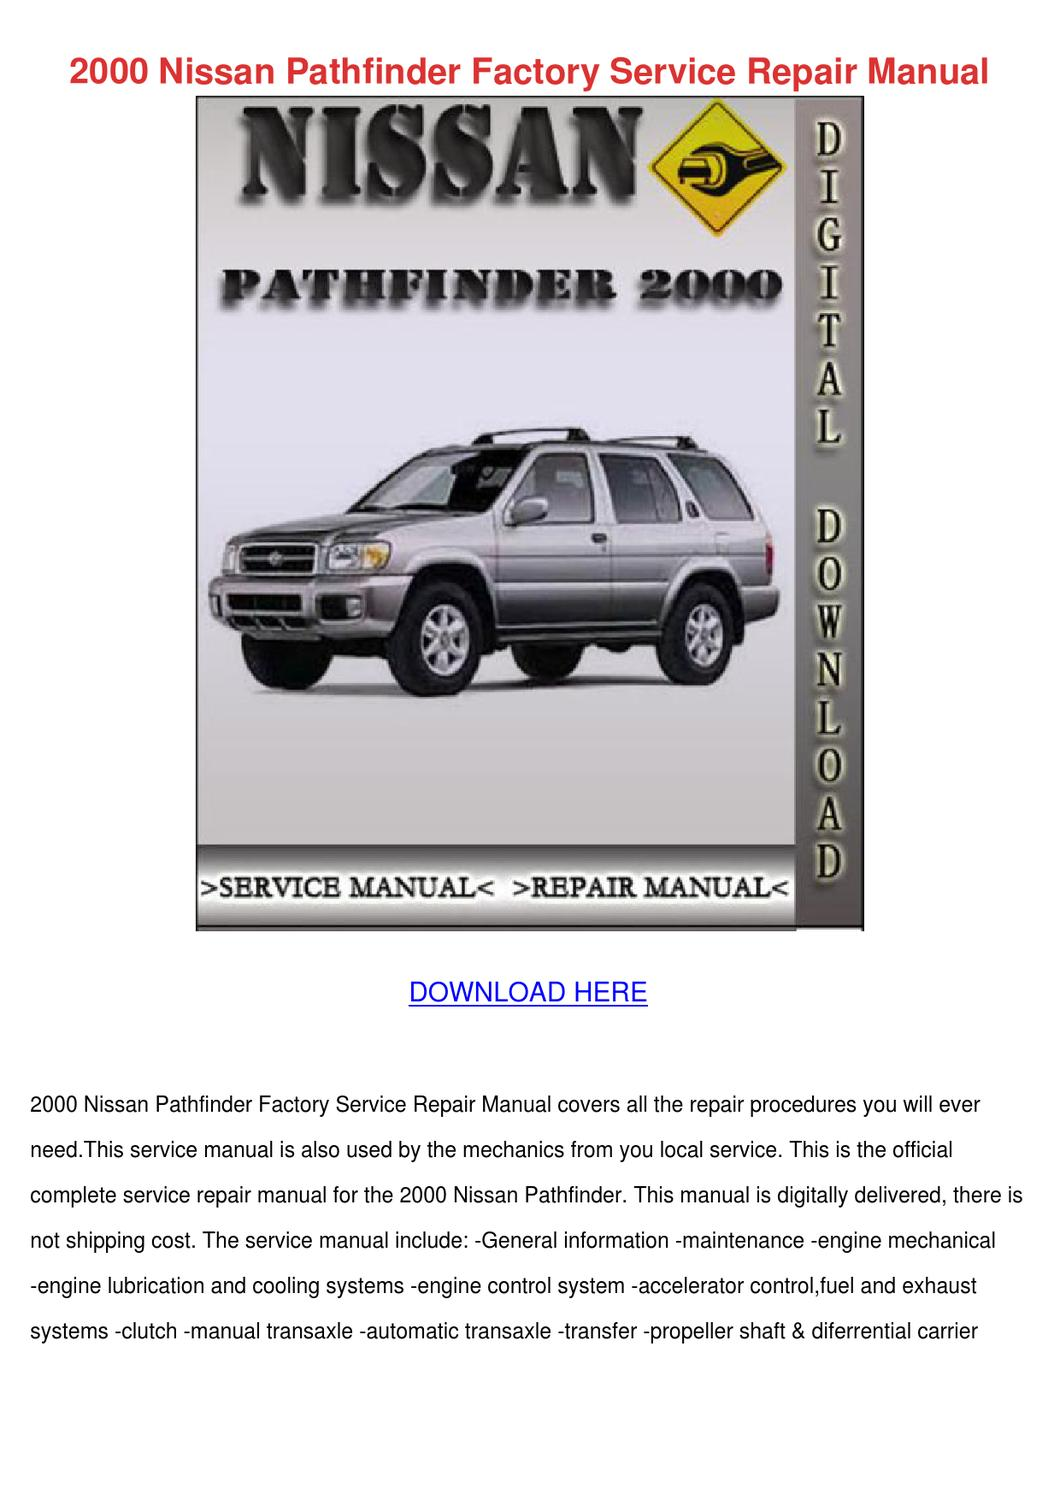 2000 nissan pathfinder repair manual download